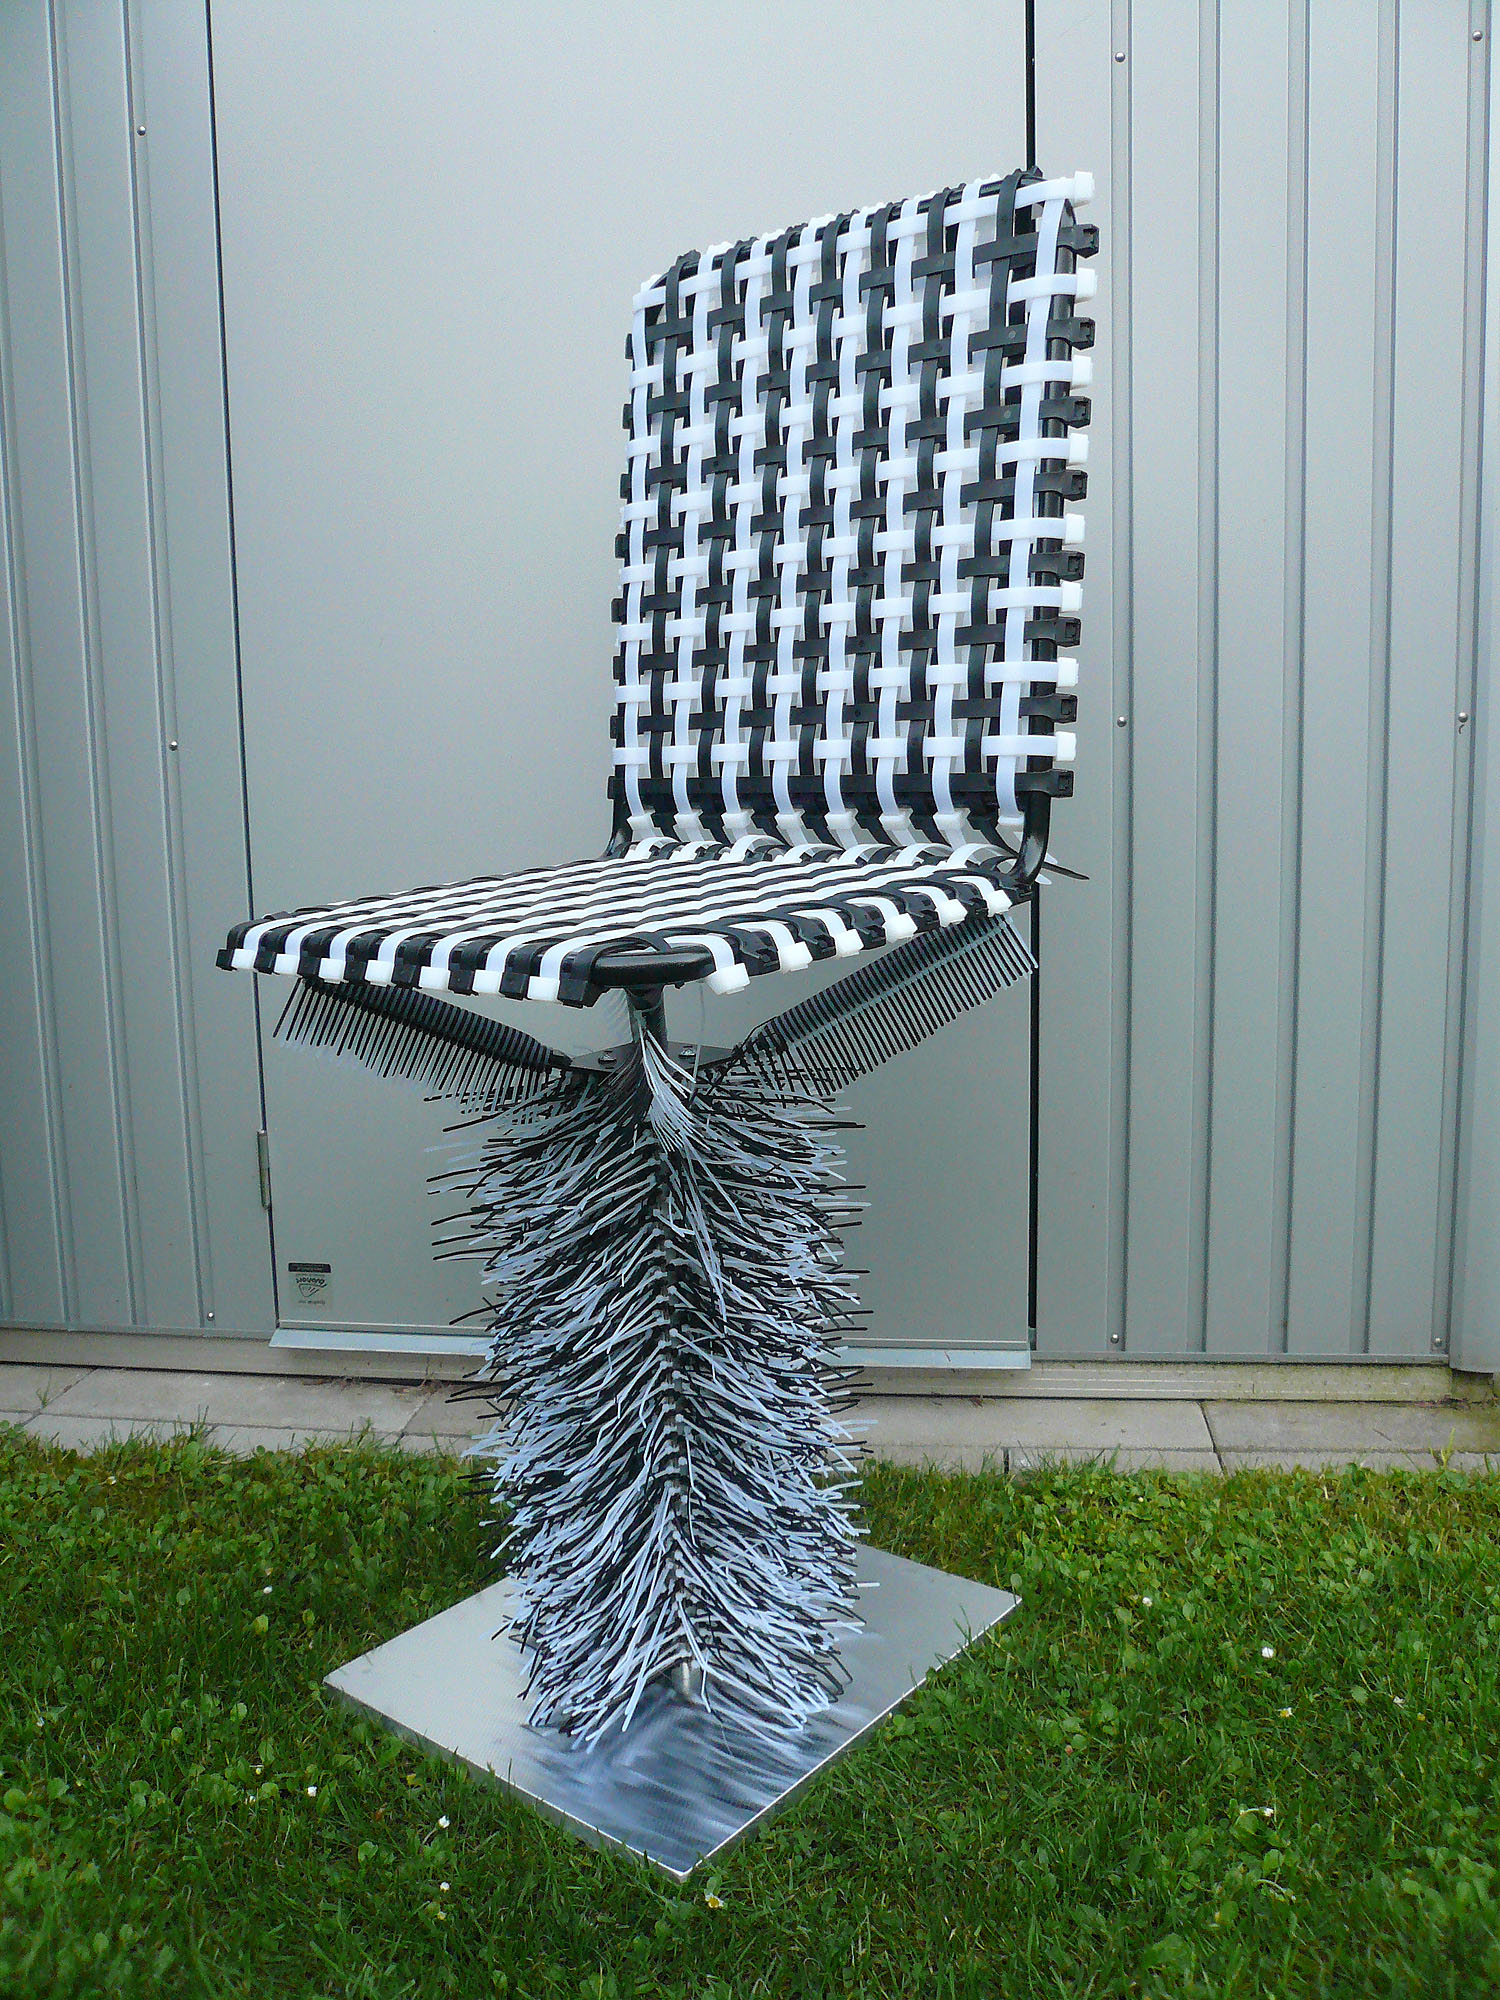 Cable Tie Chair final